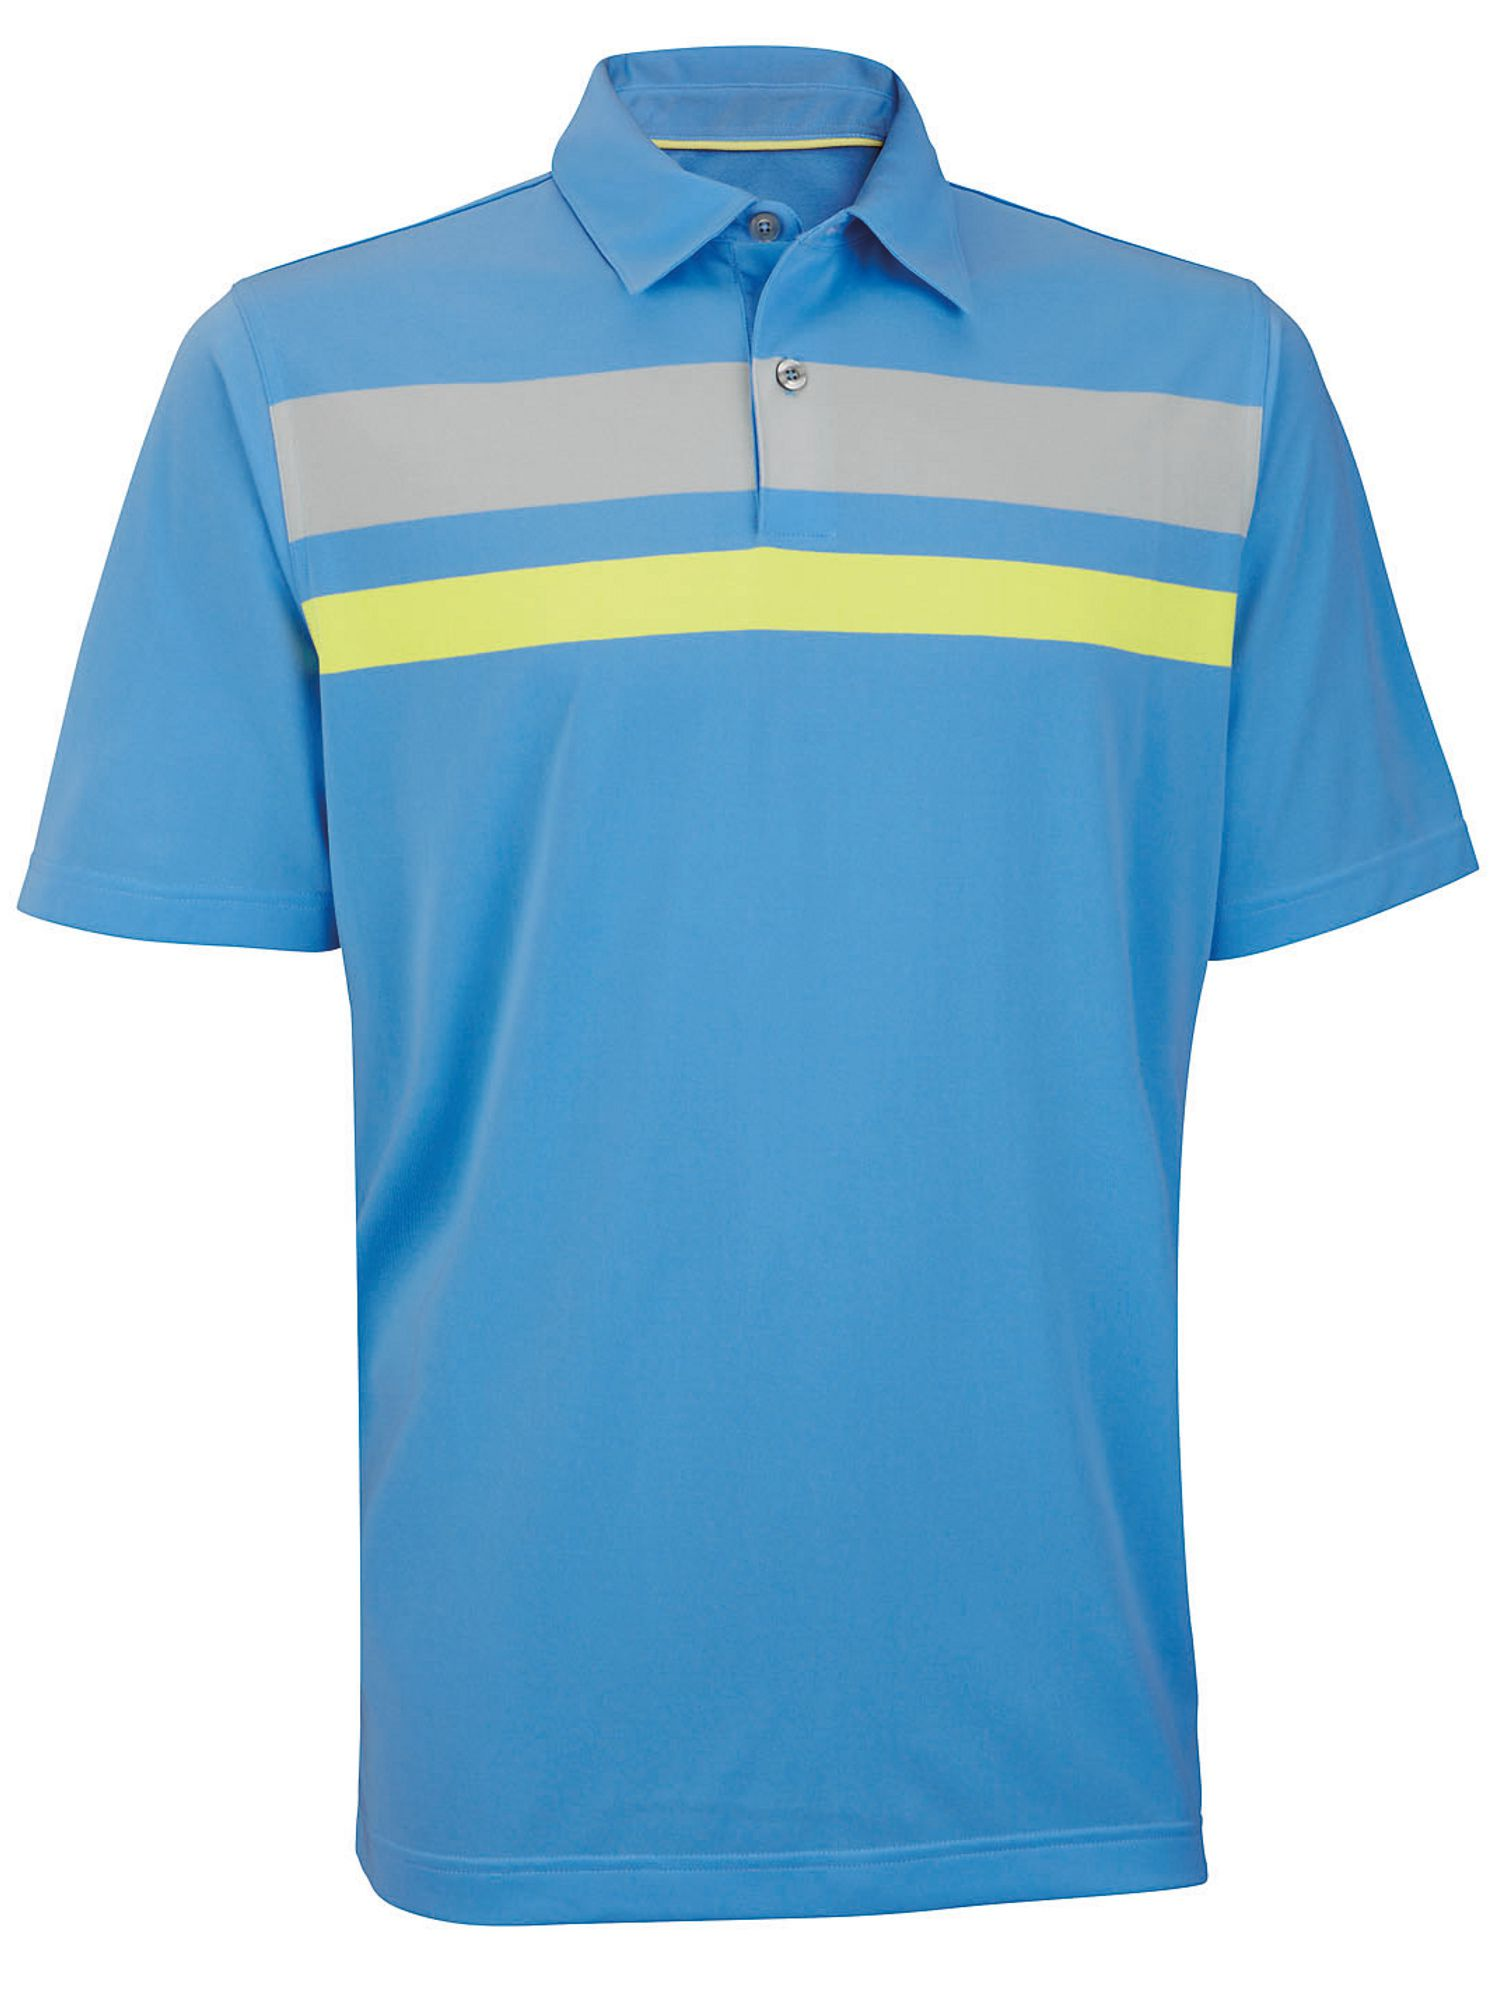 Performance engineer chest stripe golf shirt